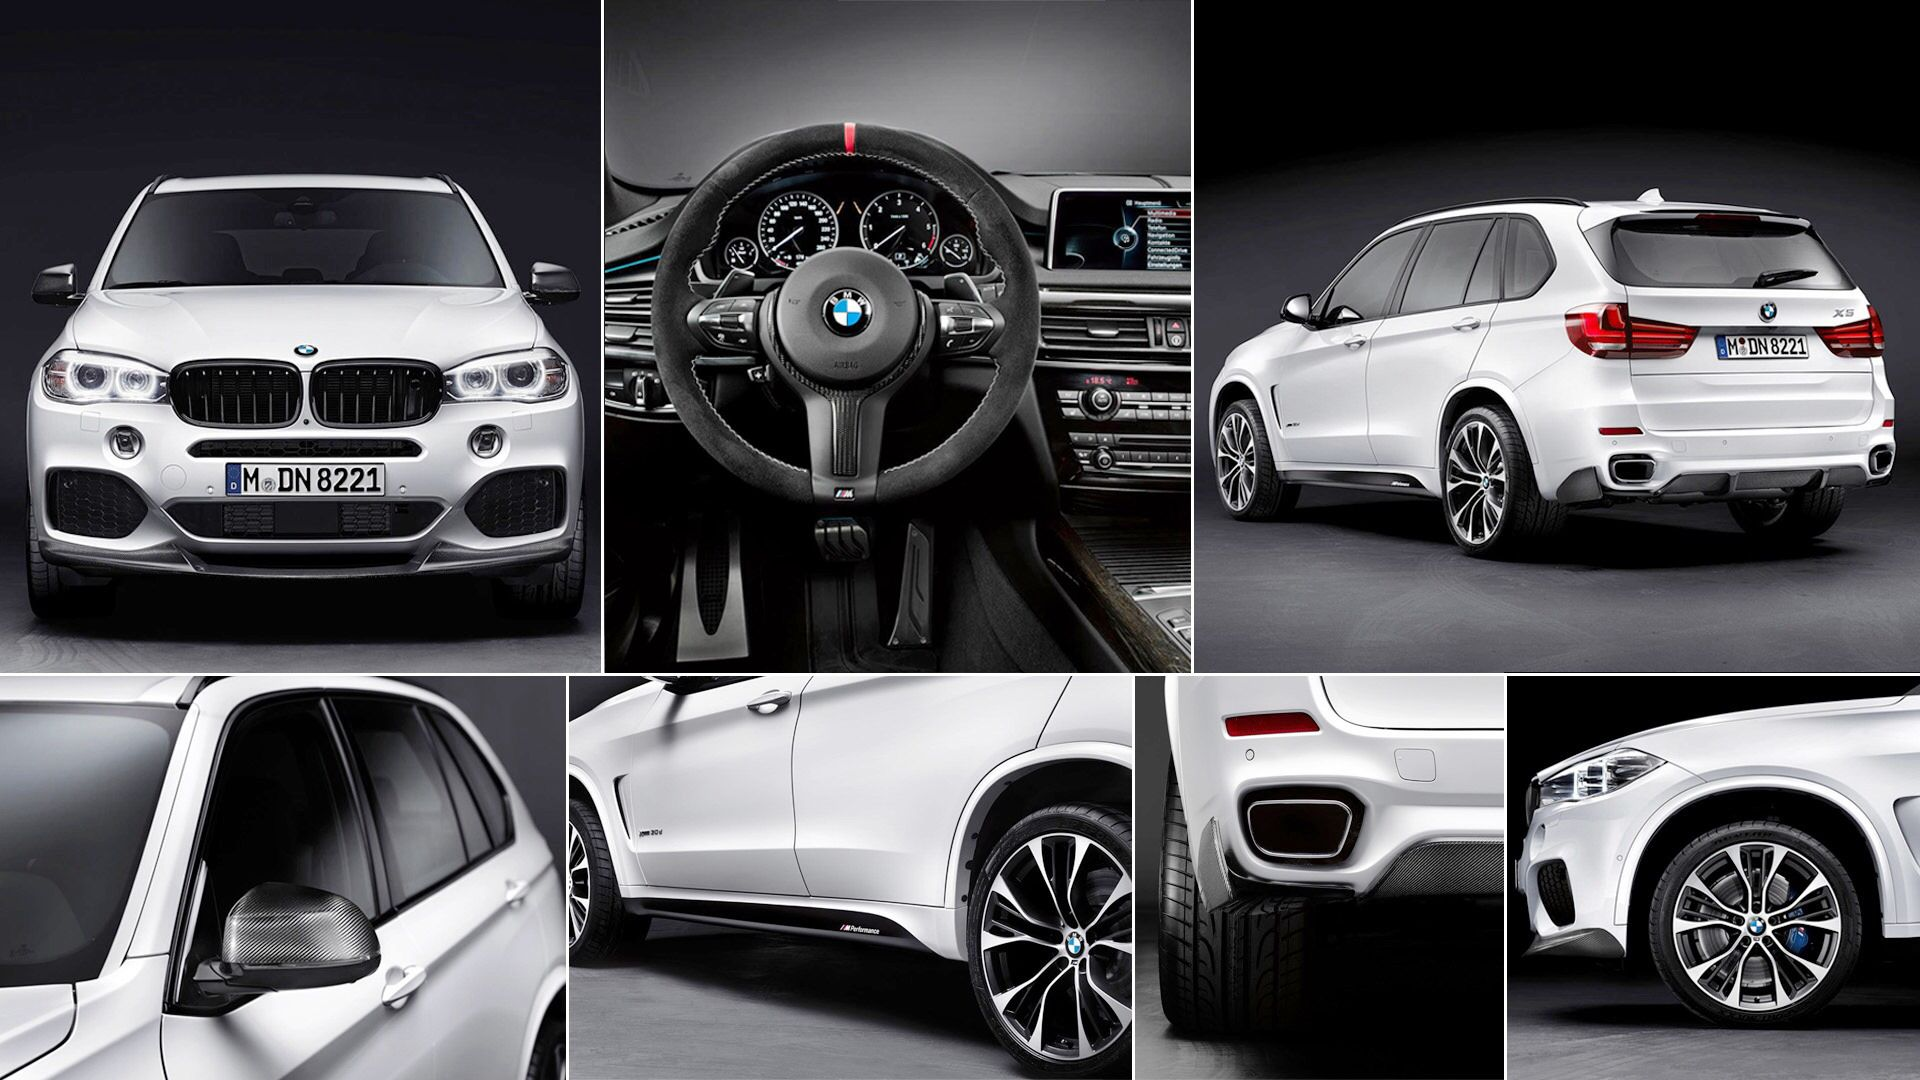 Test drove this beast yesterday bmw x5 2014 m sport this years model comes